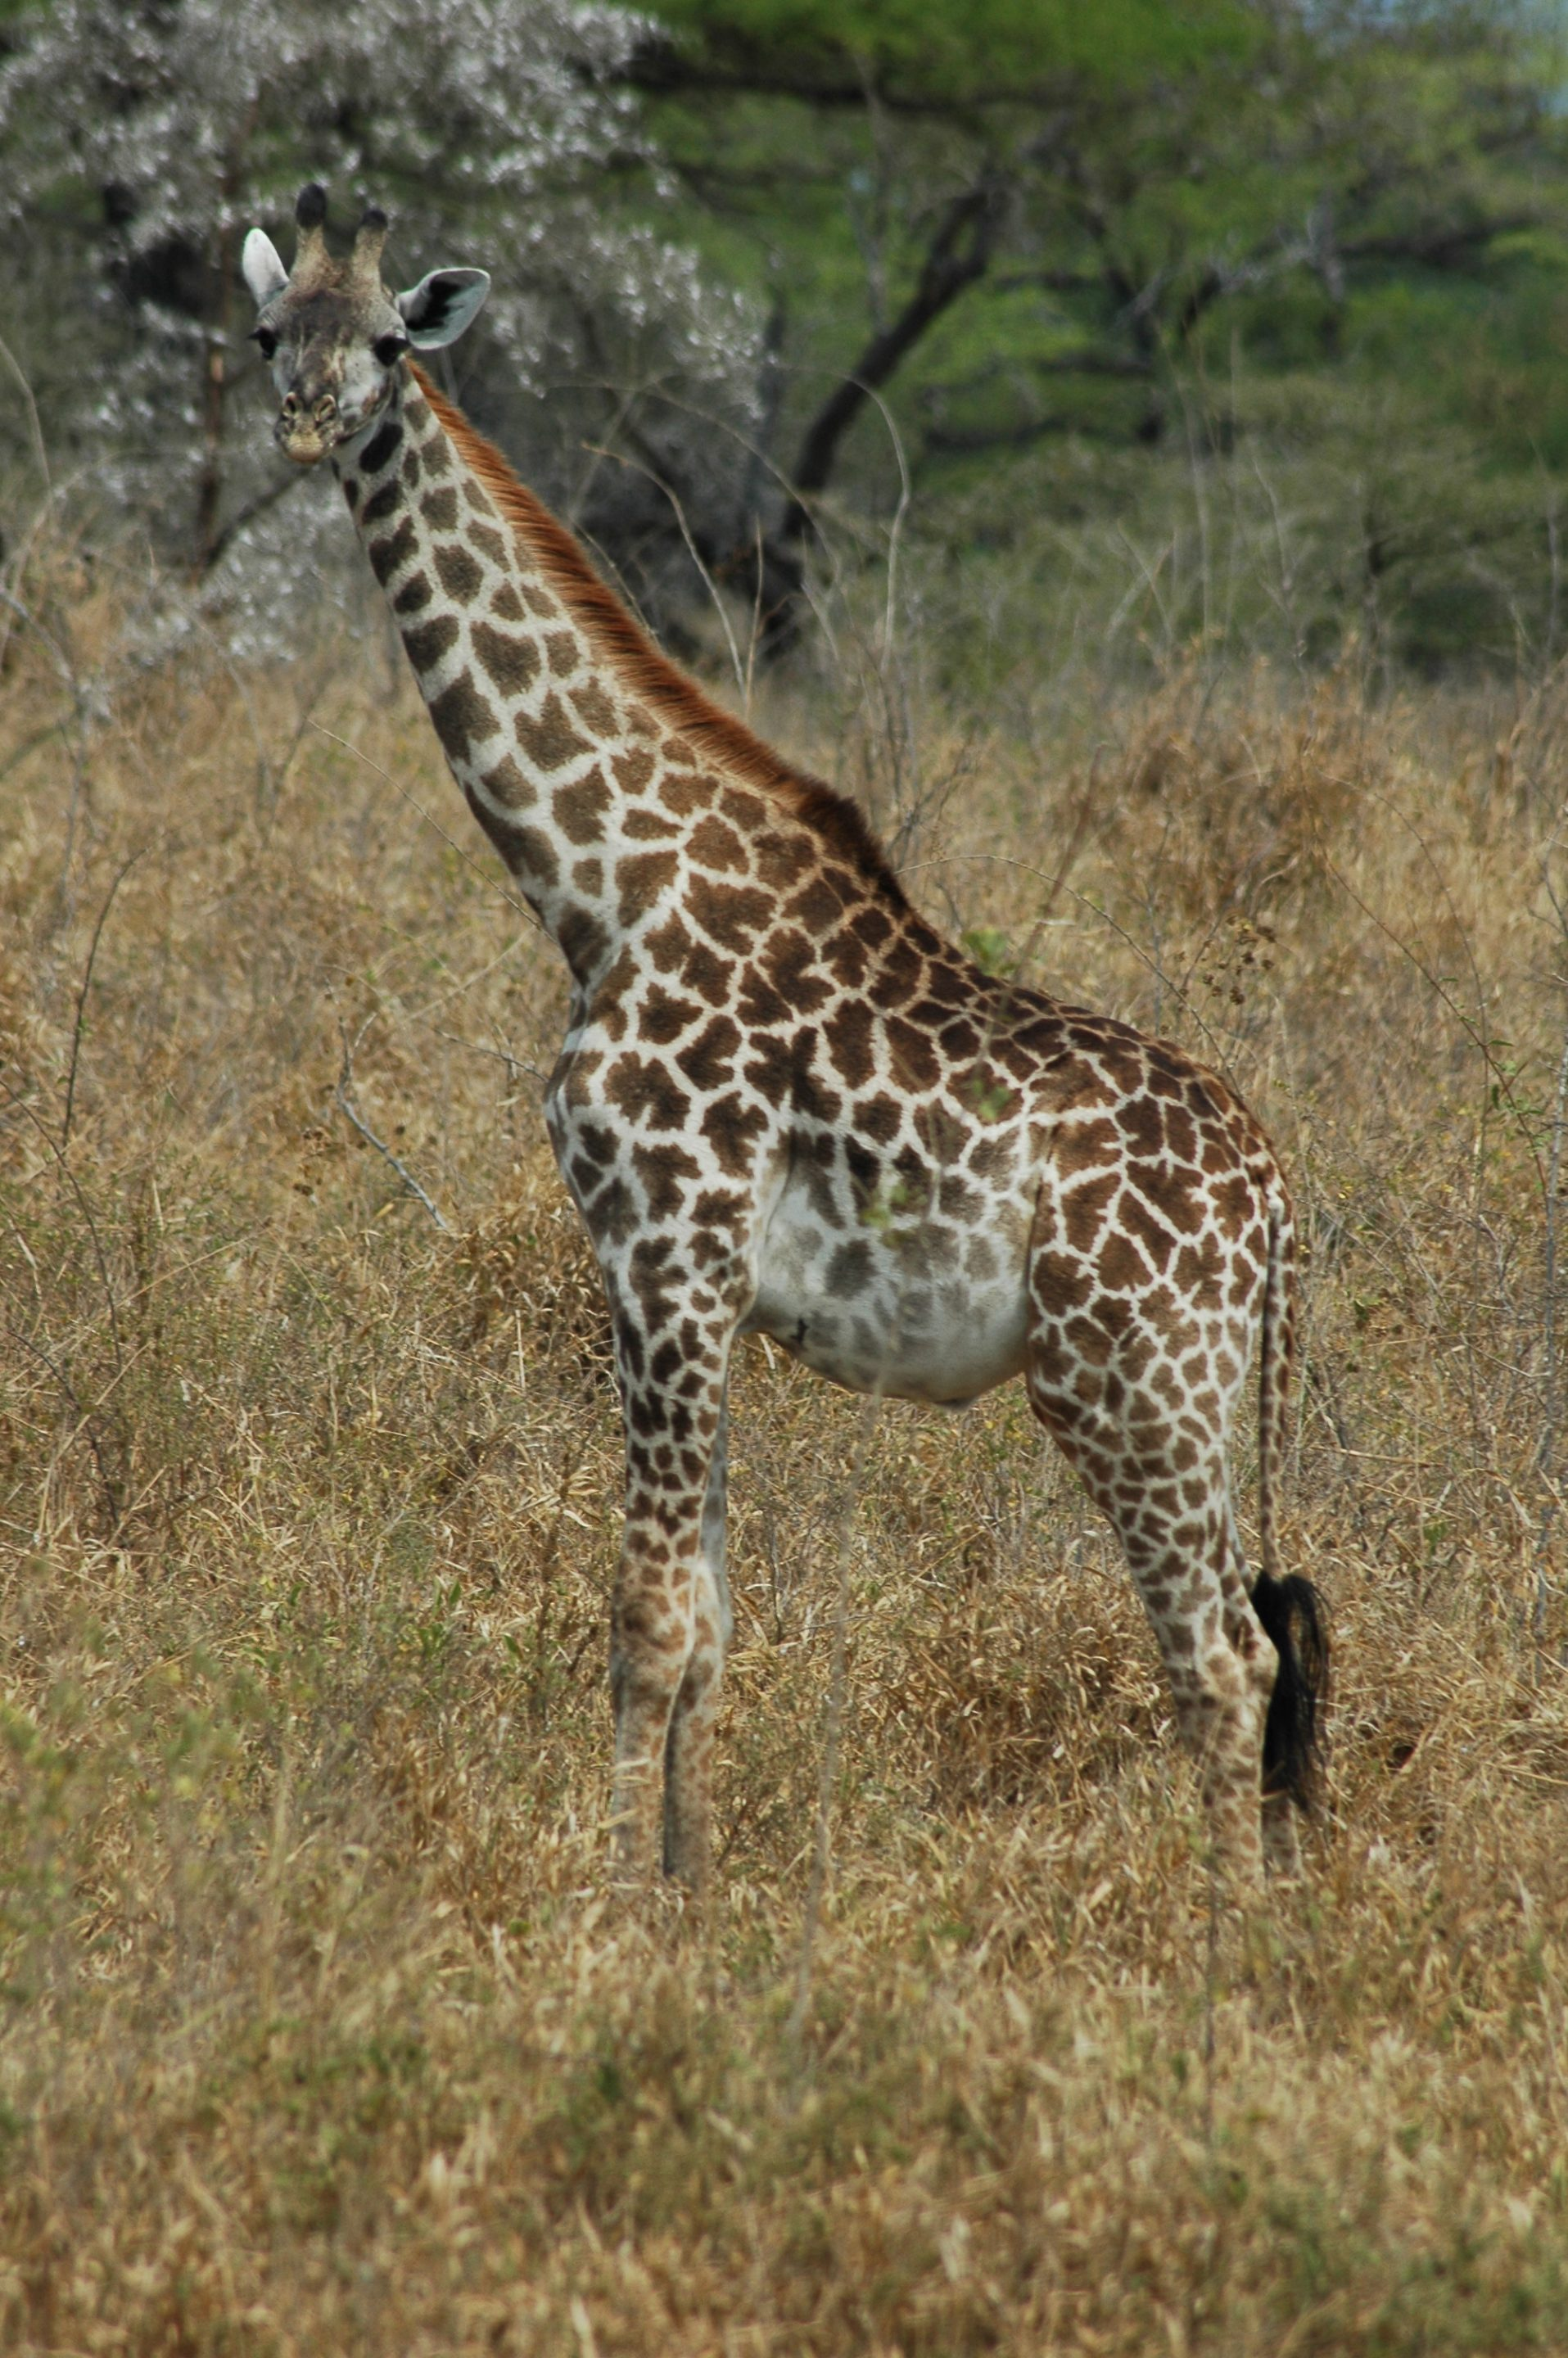 Giraffe in Selous